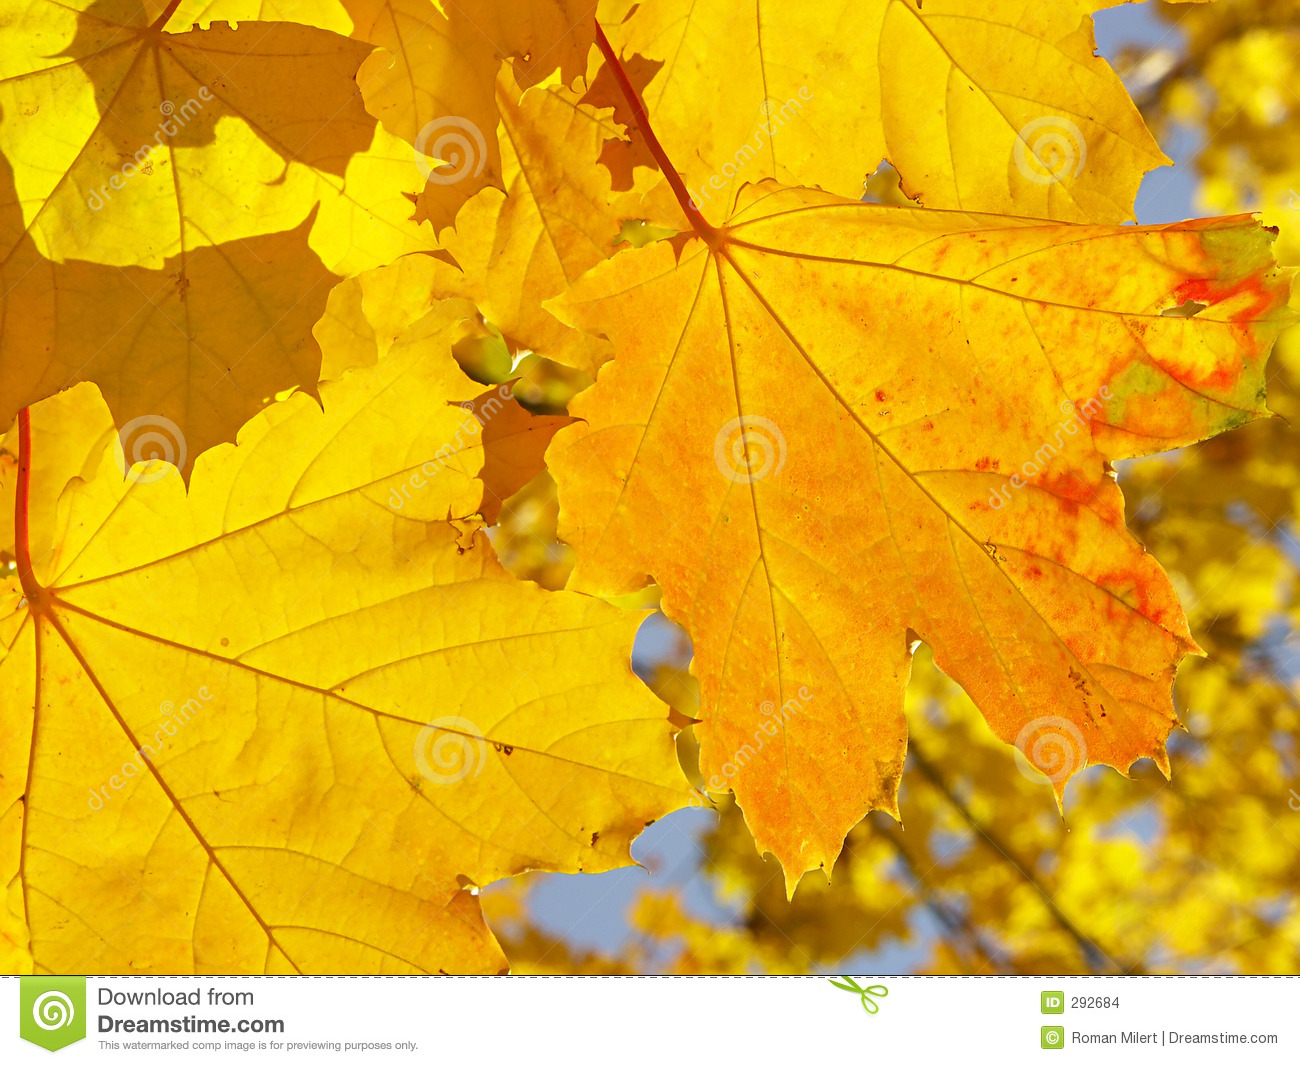 Shades Of Yellow shades of yellow stock images - image: 292684